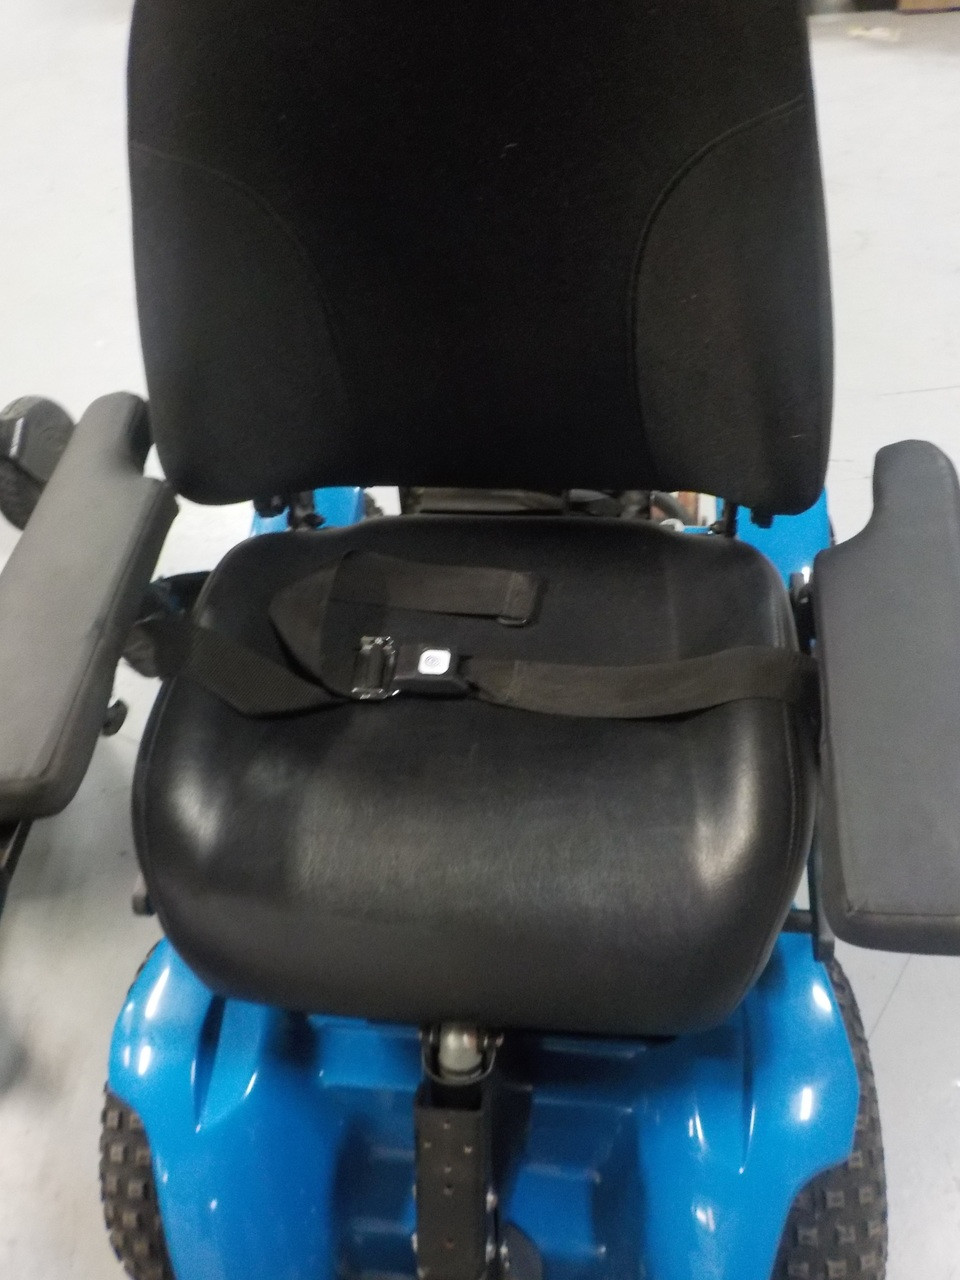 Magic Mobility X8 Wiring Diagram Trusted Diagrams 4x4 Extreme All Terrain Power Wheelchair By Innovation In Motion